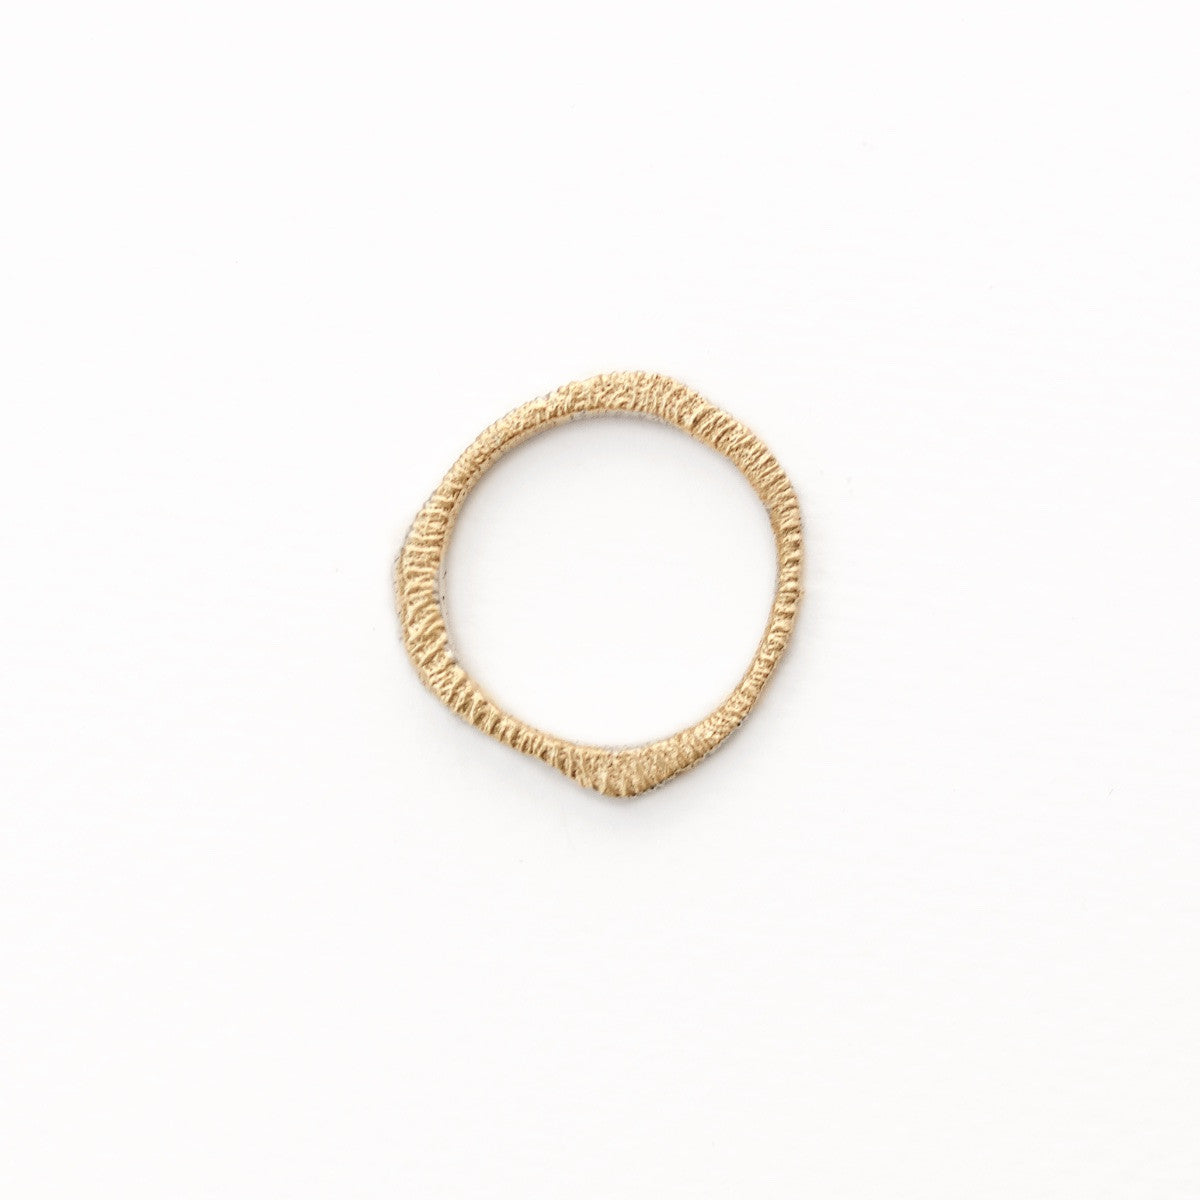 'Woodring No. 2' Fairtrade Gold Ring